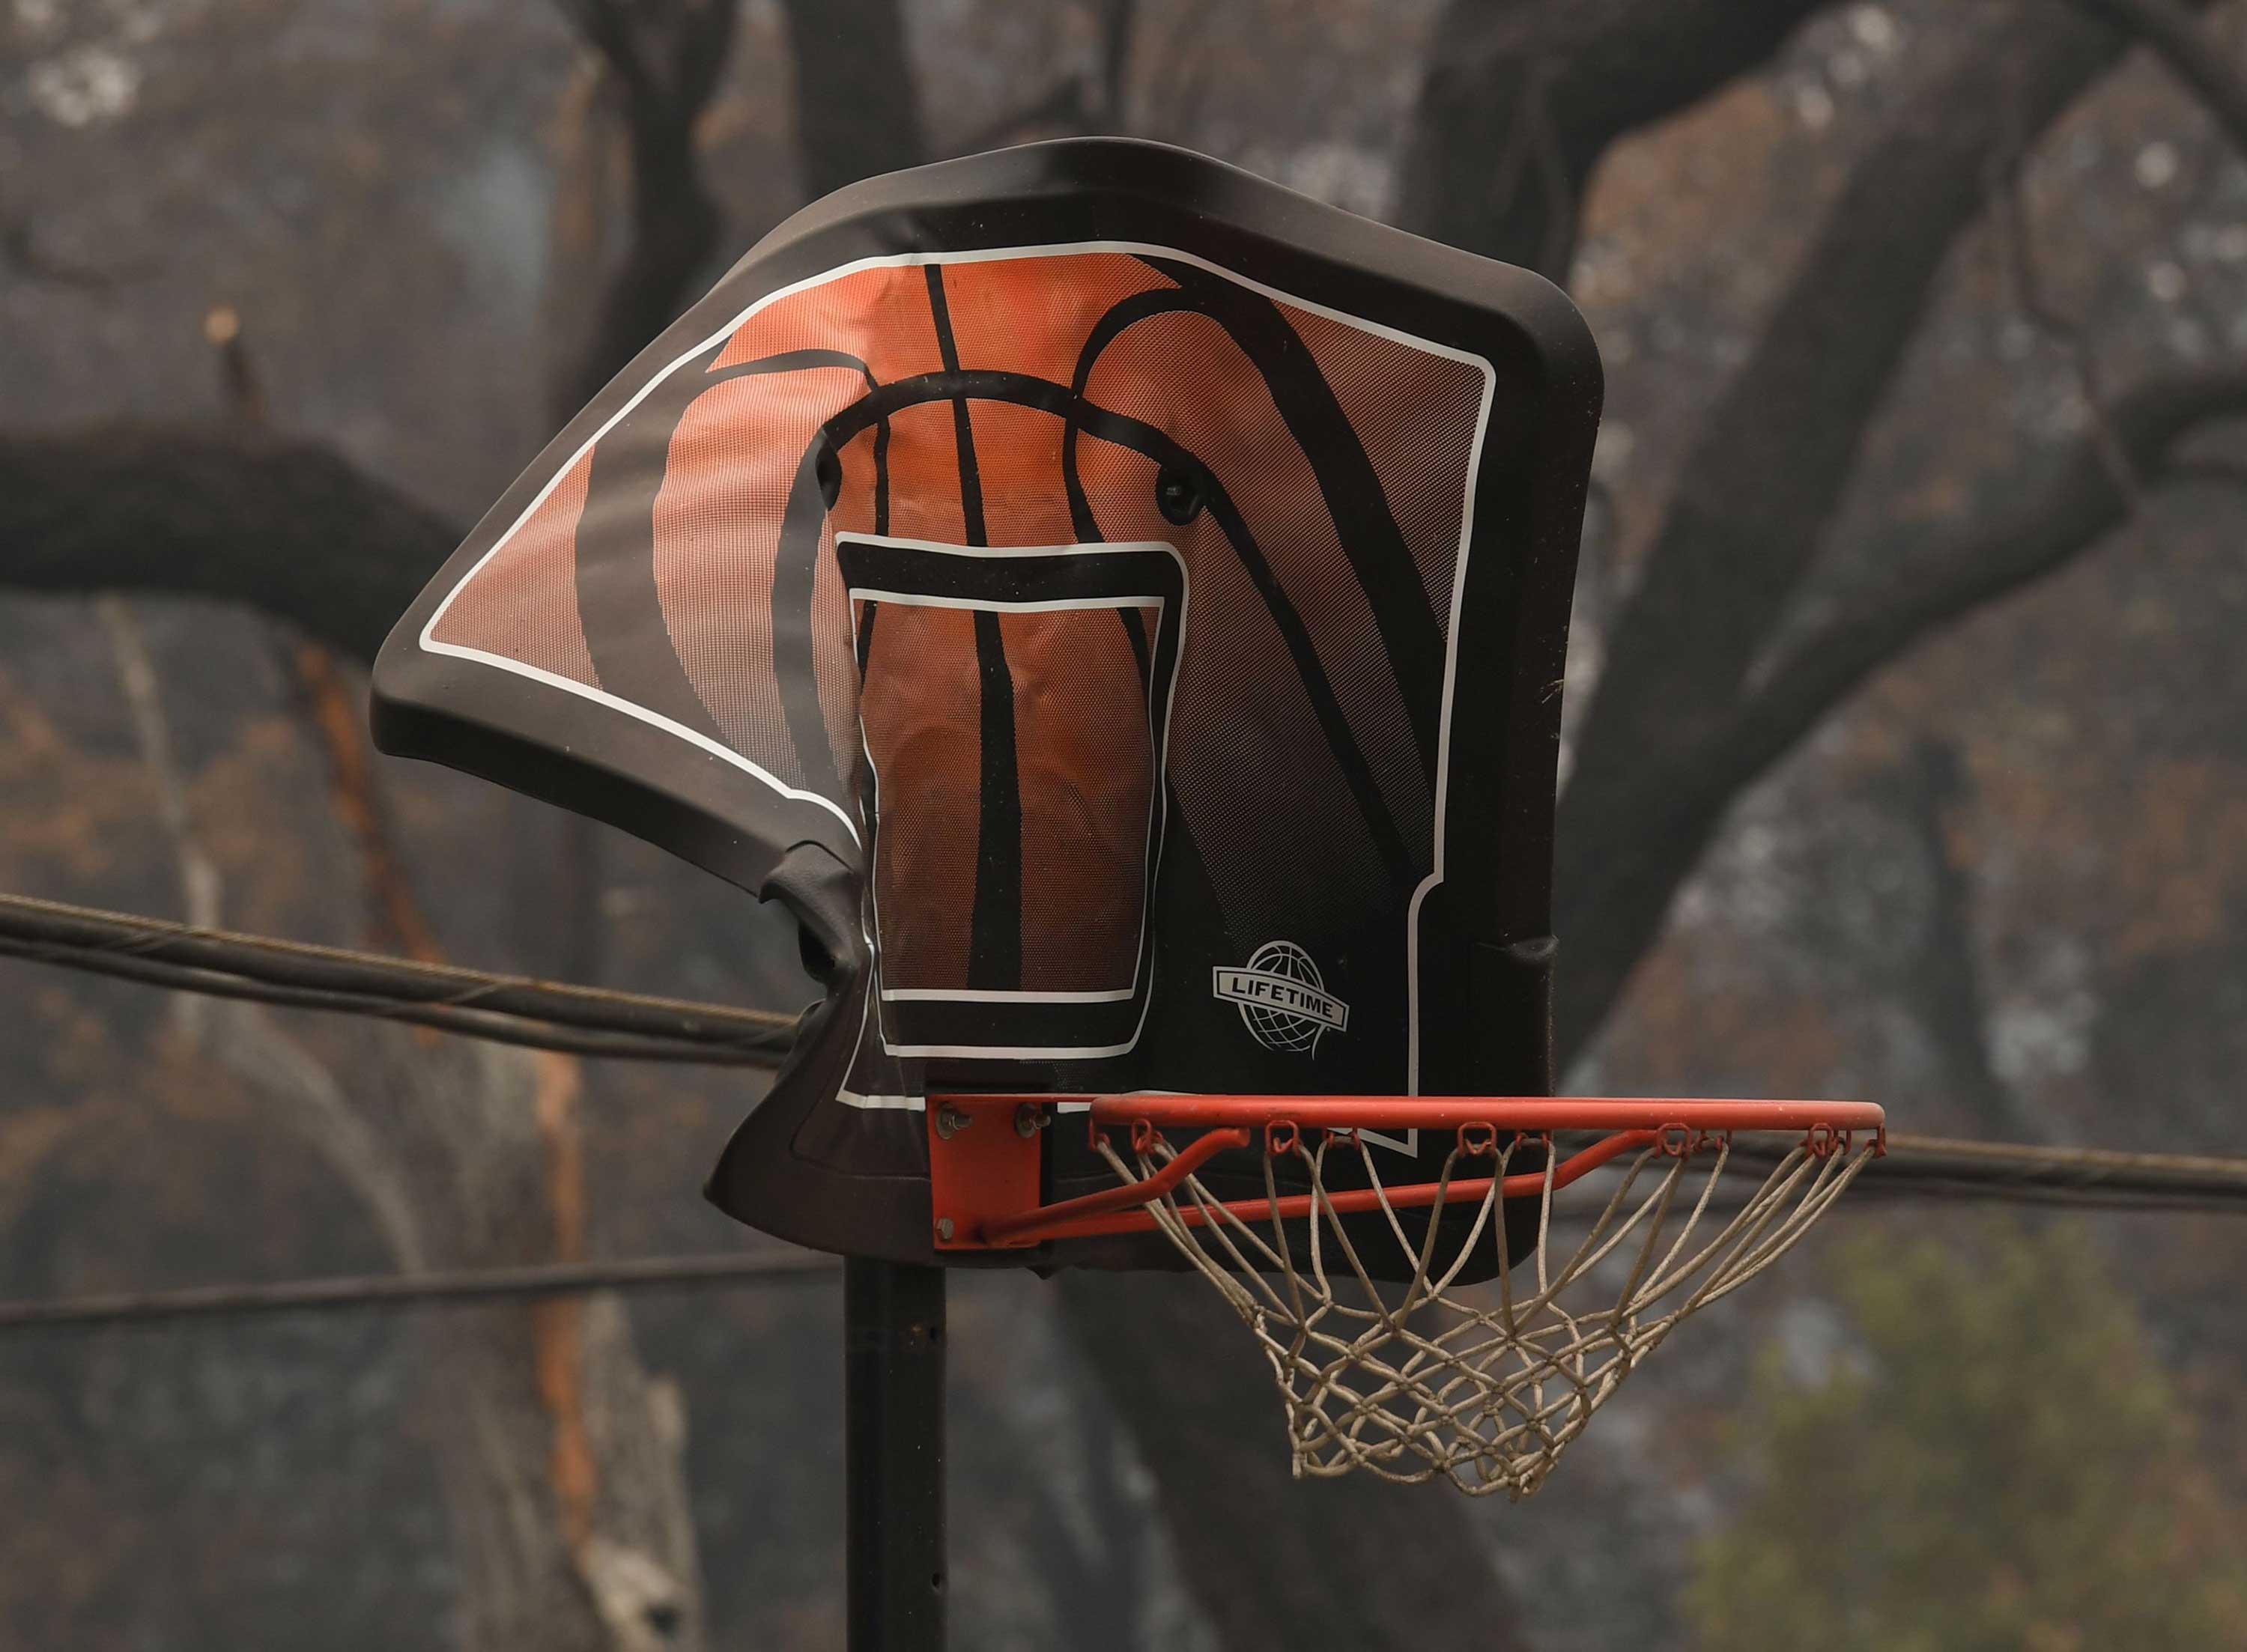 "<div class=""meta image-caption""><div class=""origin-logo origin-image none""><span>none</span></div><span class=""caption-text"">A fire damaged basketball hoop in the Keswick neighborhood of Redding, as the Carr fire continues to spreads towards the town of Douglas City near Redding, California on July 31. (MARK RALSTON/AFP/Getty Images)</span></div>"